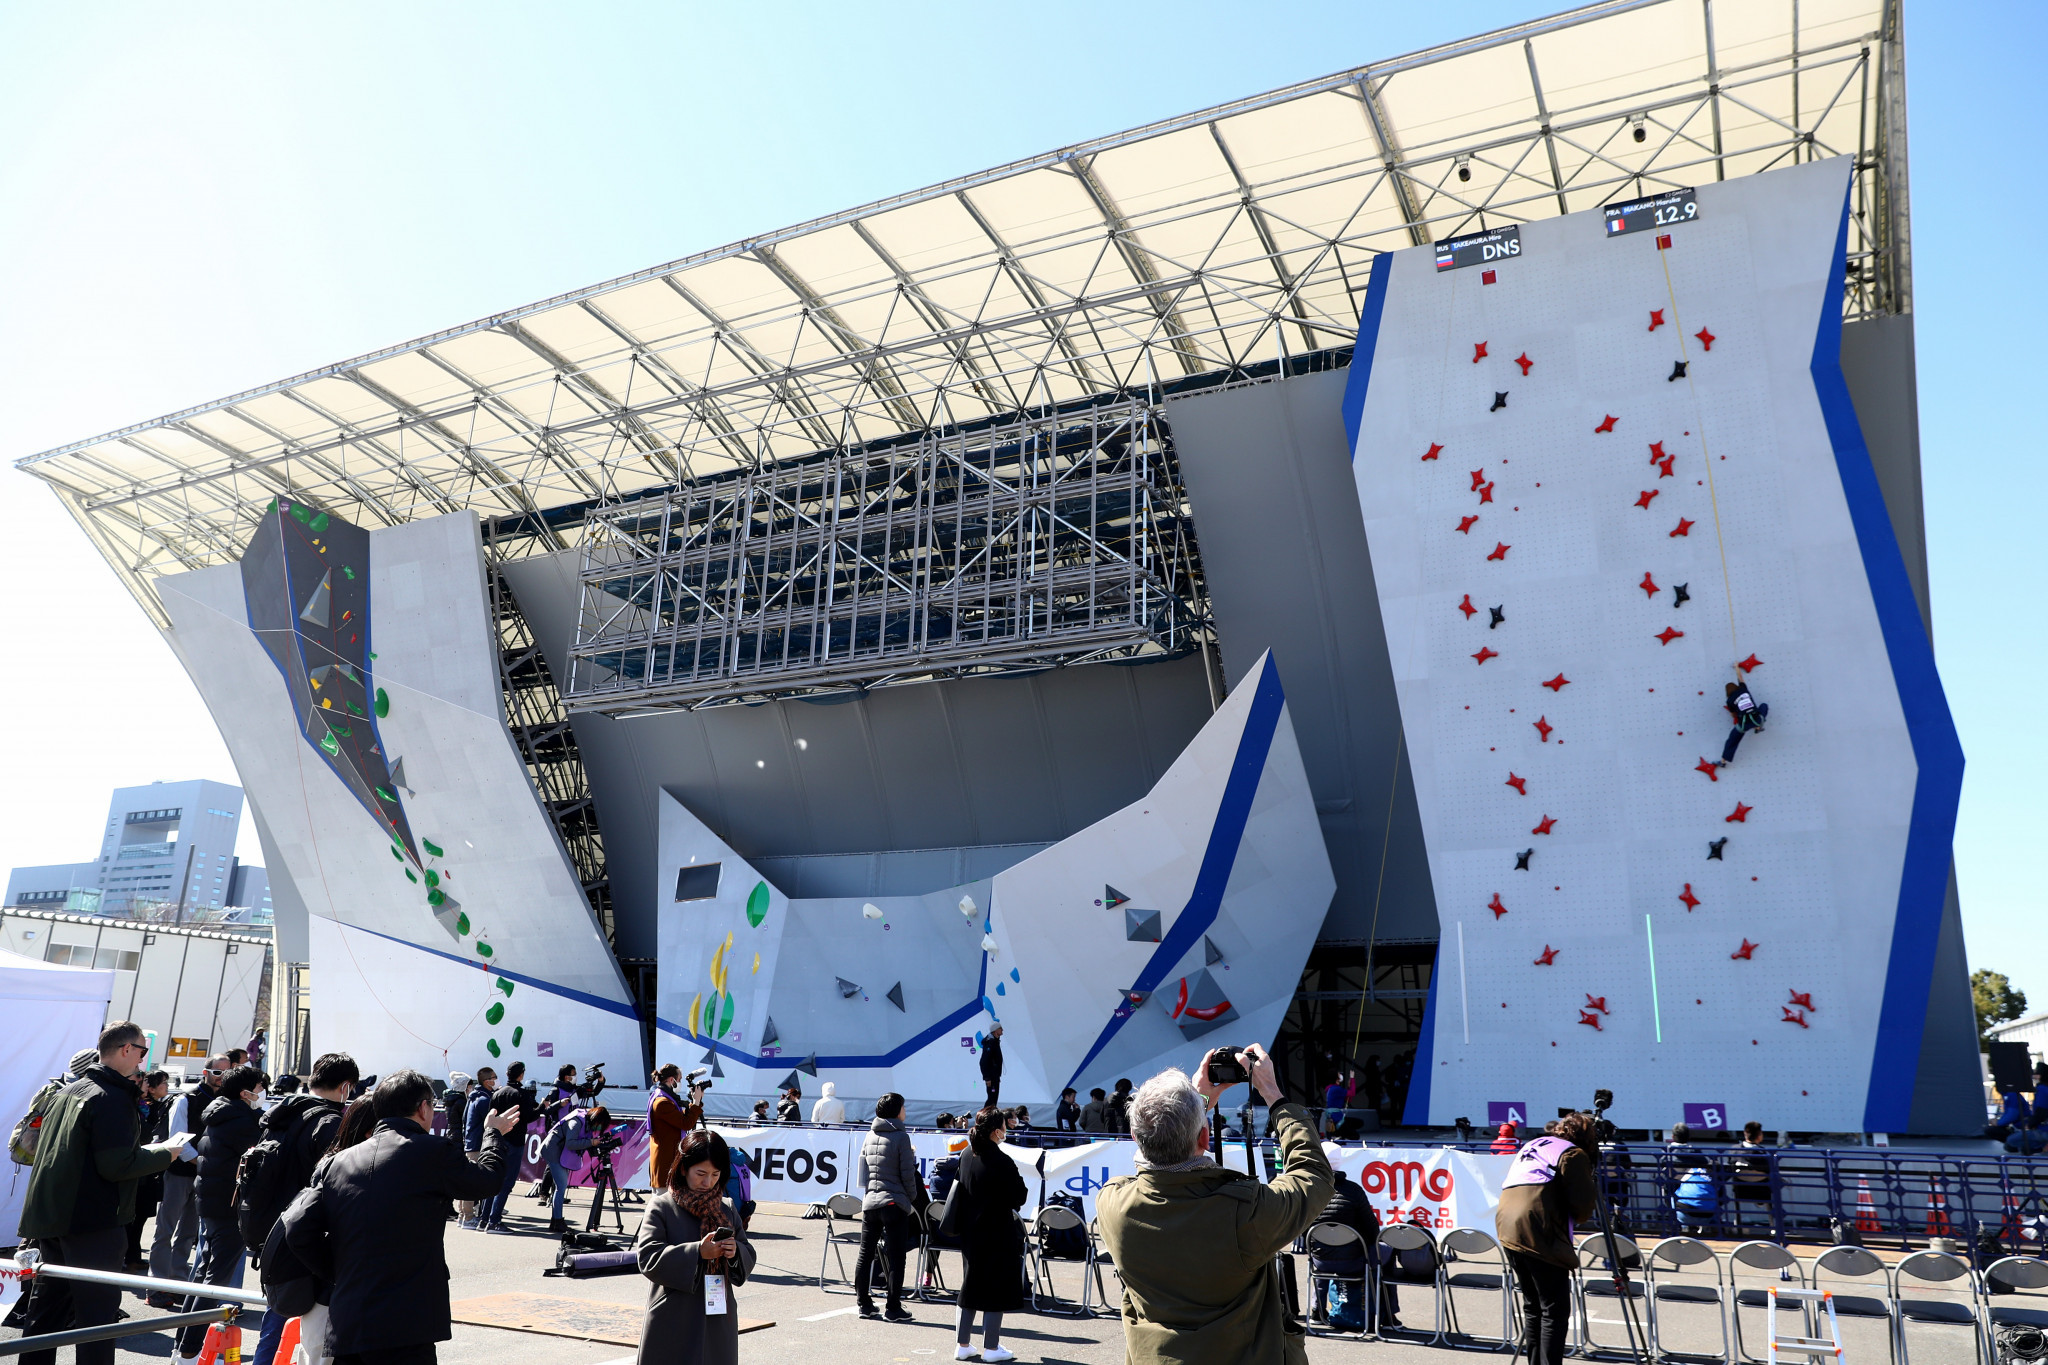 Tokyo 2020 climbing venue declared ready after test event without athletes